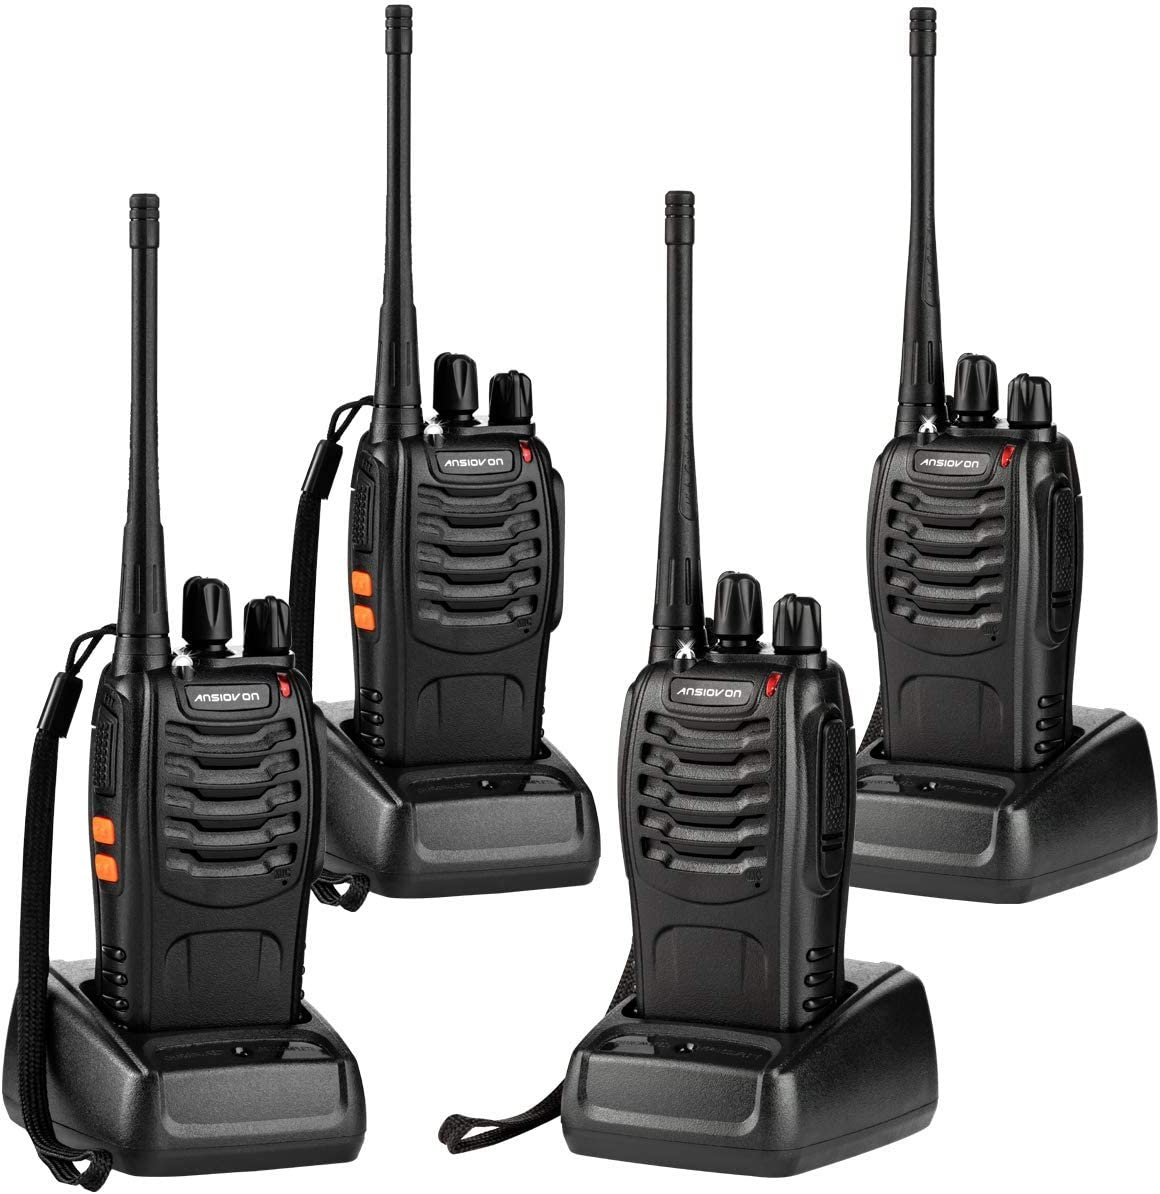 ANSIOVON Walkie Talkie-Rechargeable Long Range Two Way Radio-16 Channels-LED Flashlight -Earpiece-UHF 400-470Mhz-Professional Walky Talky-1500 Mah Rechargeable Li-ion Battery(Include)-4 Pack.